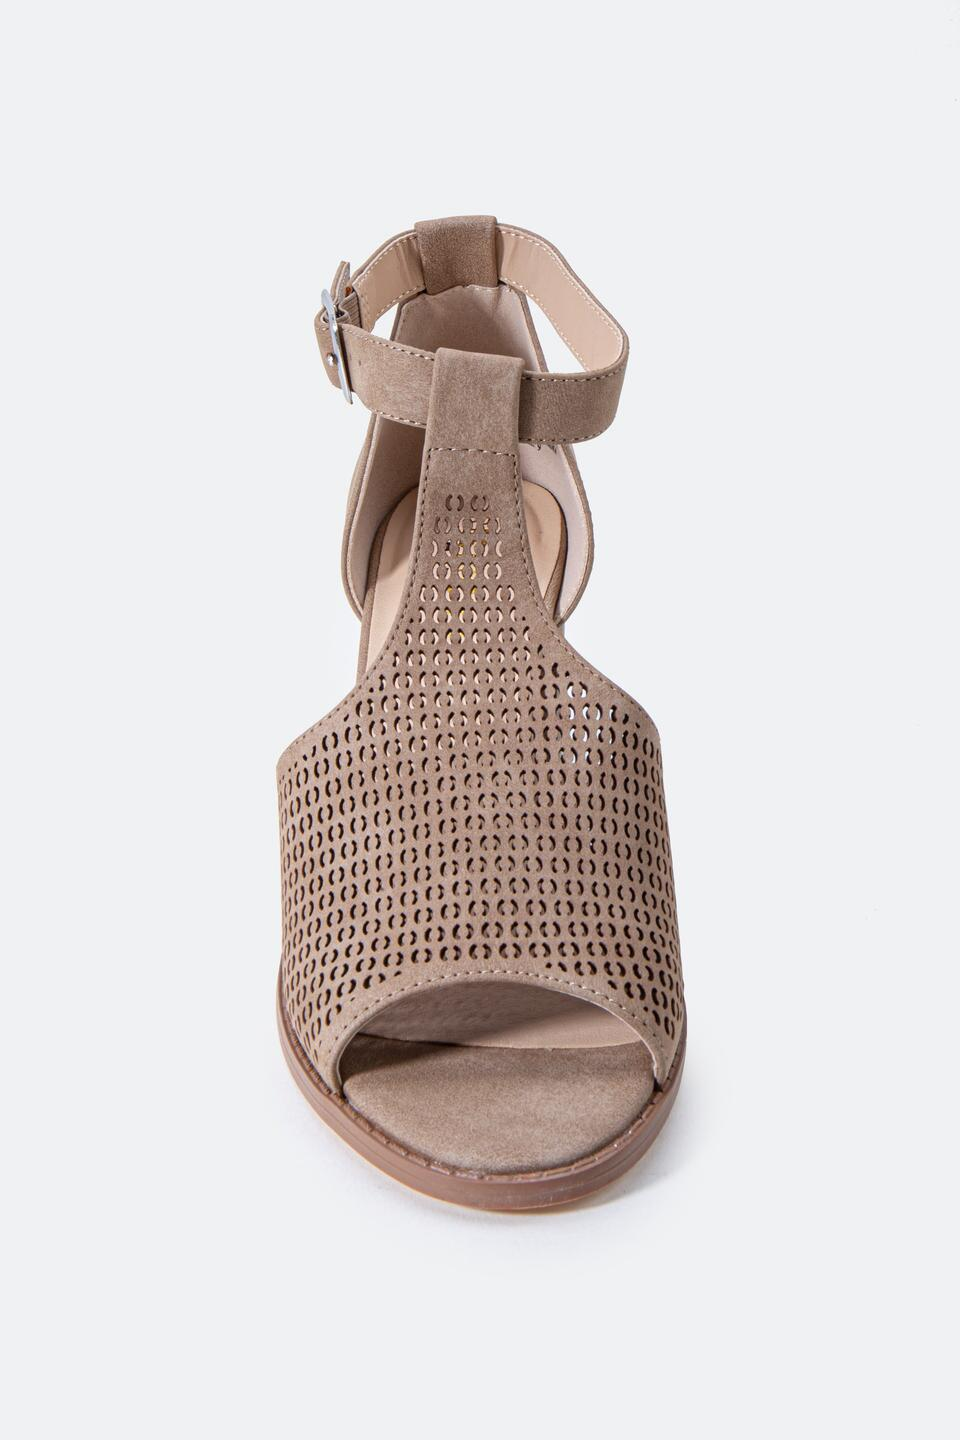 Restricted Fayla Perforated Heeled Sandal- Taupe 3